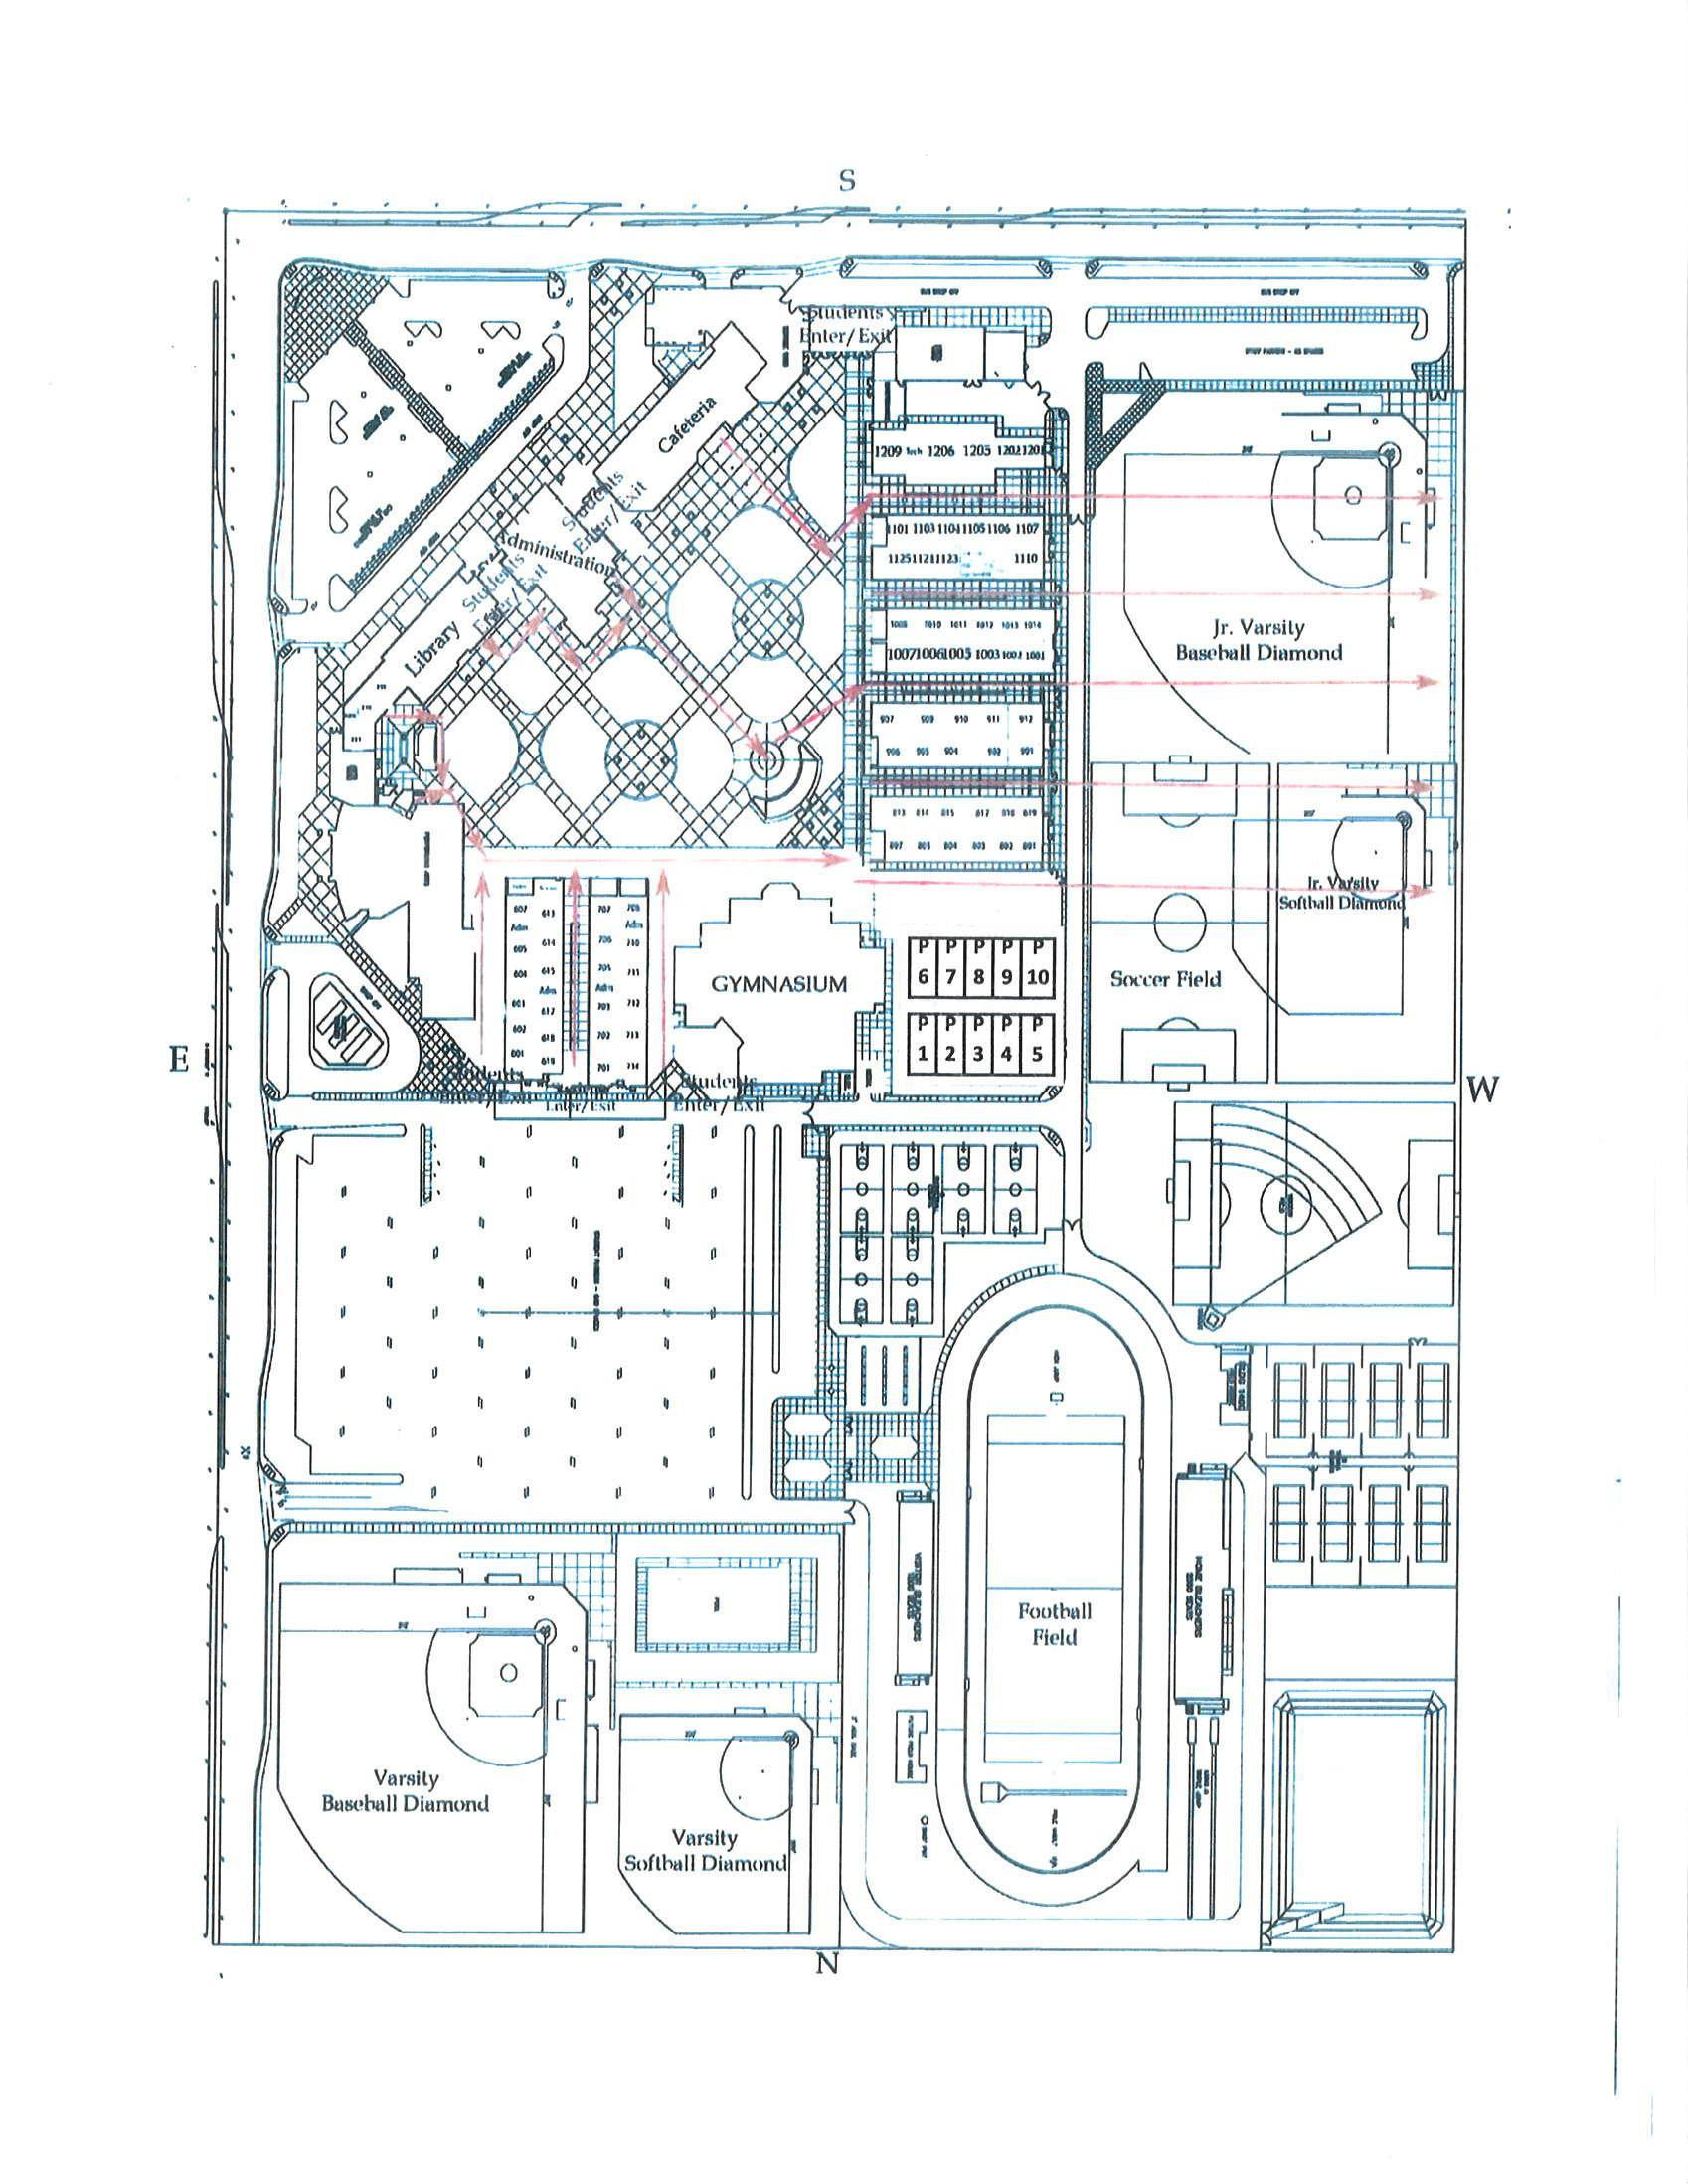 Independence High School Campus Map.Campus Map About Independence High School